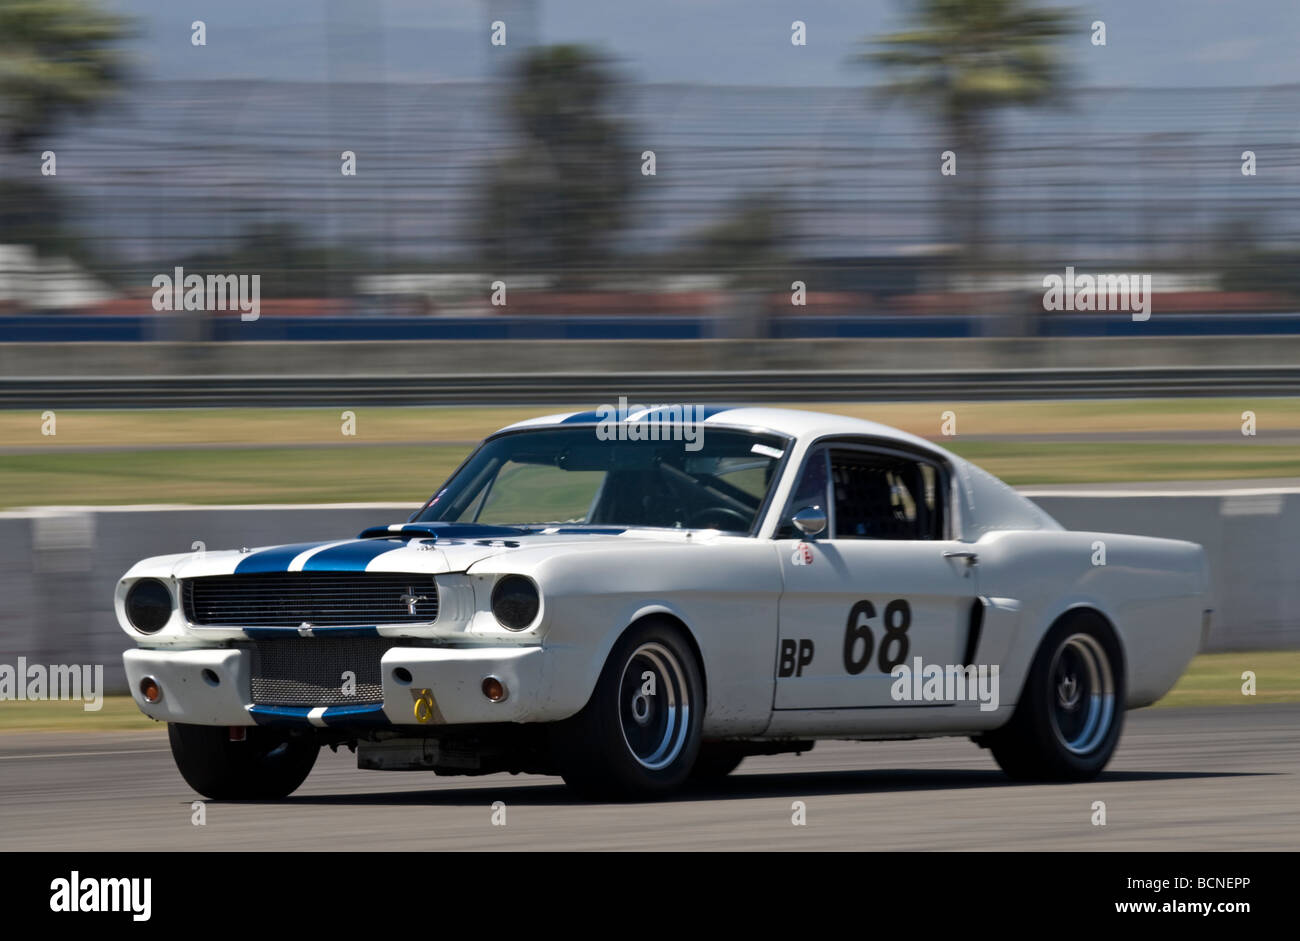 A 1966 Ford Mustang GT at a vintage racing event